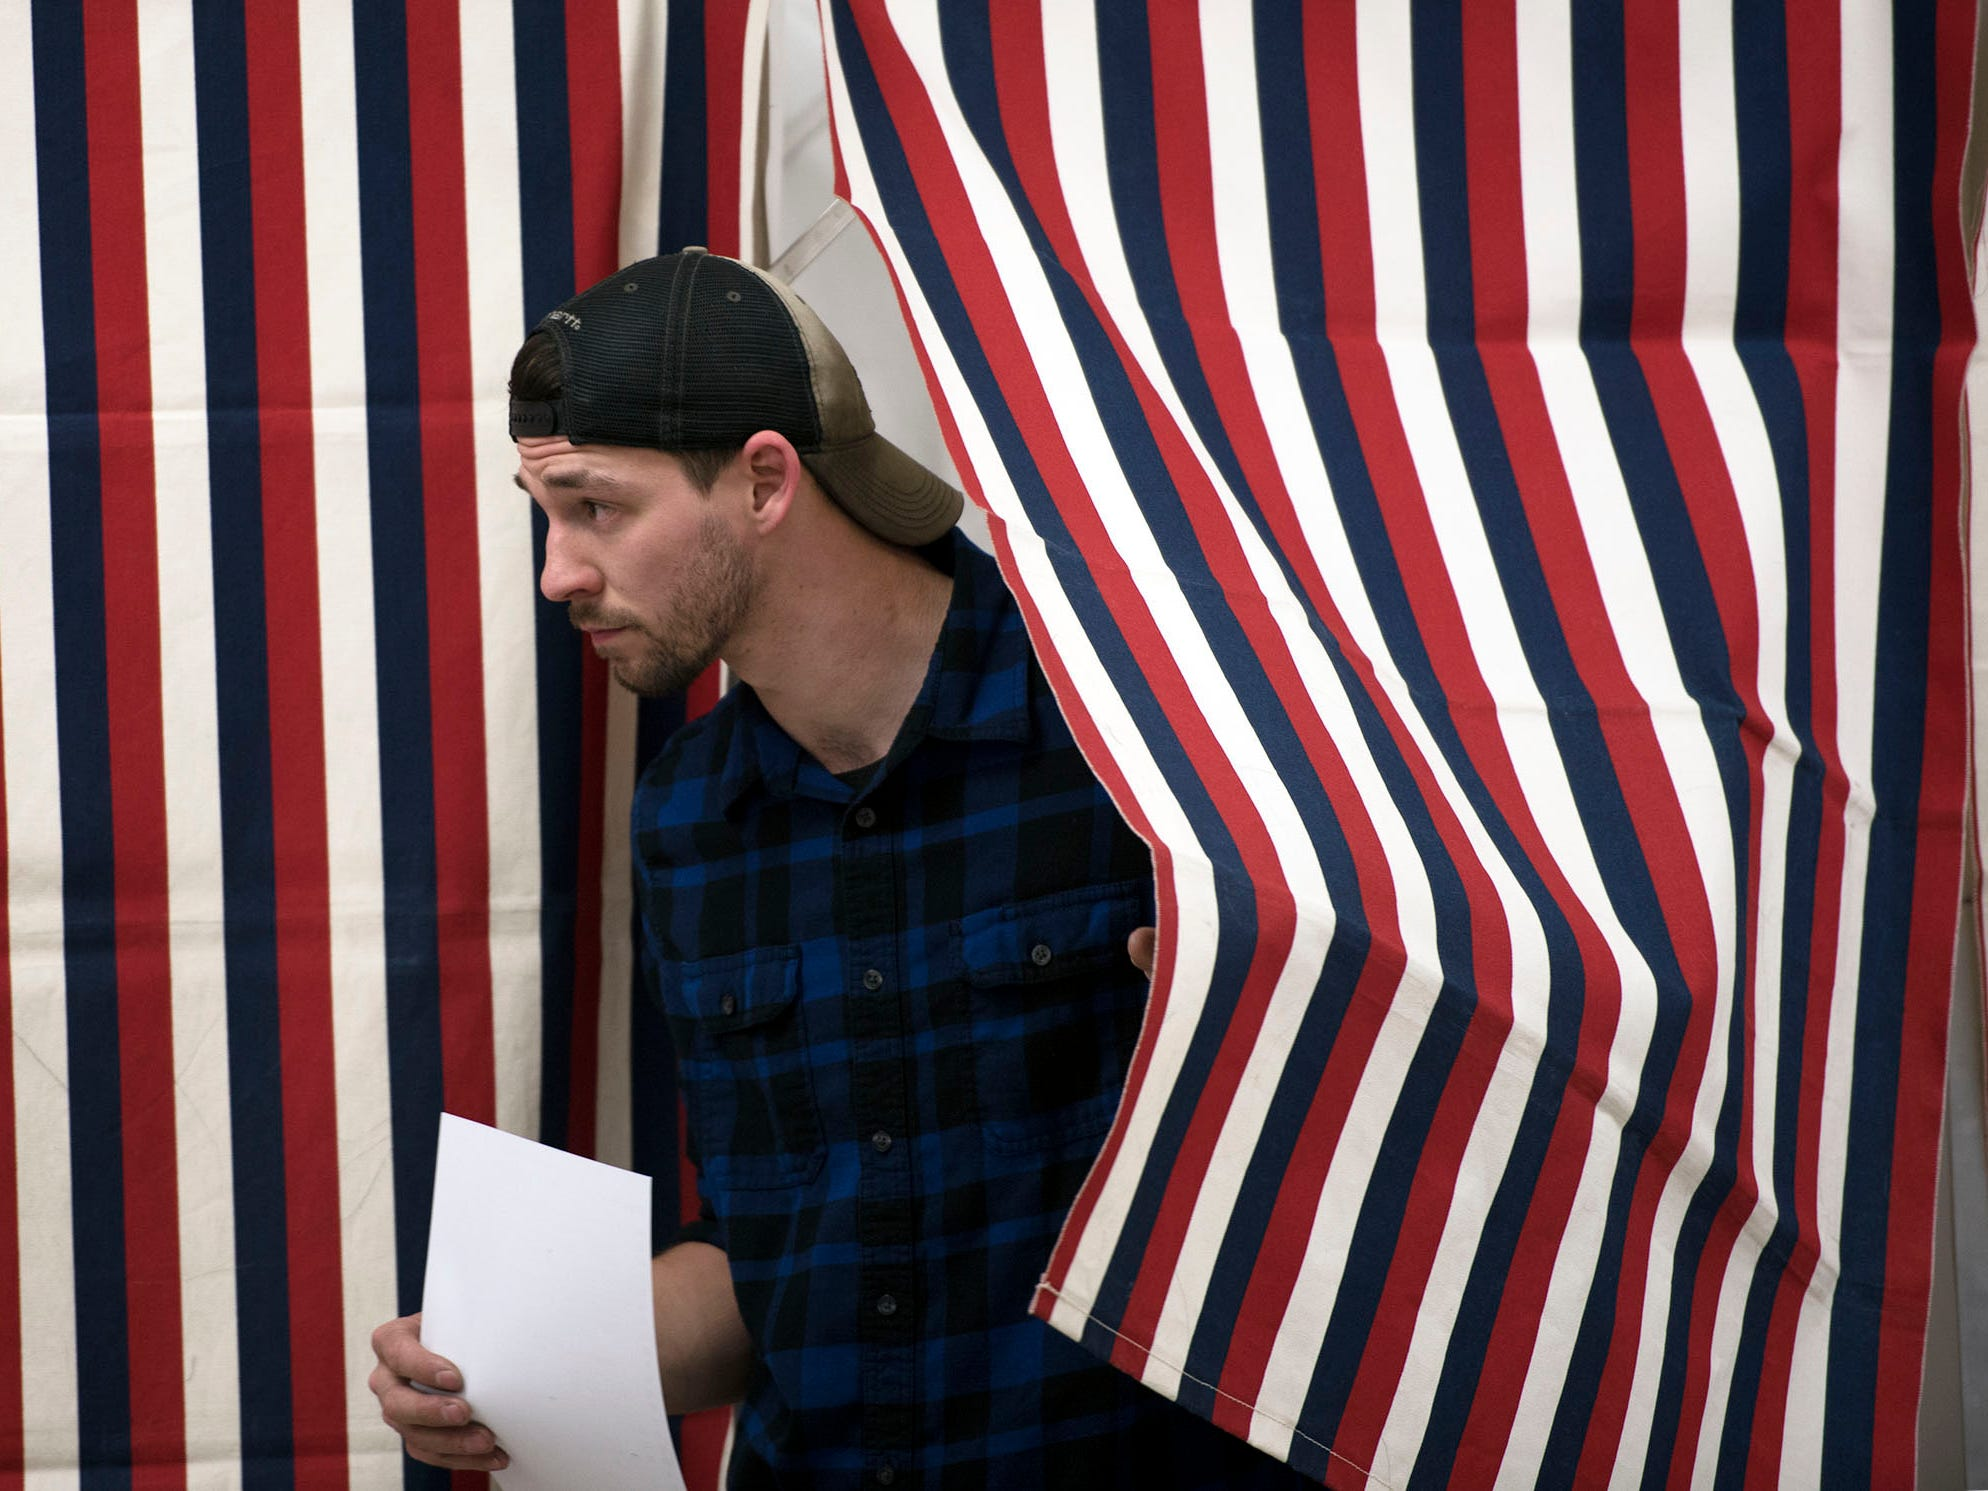 Casey King leaves the ballot booth to casts his ballot on Election Day 2018 at Fayetteville Volunteer Fire Company's events center, Fayetteville.